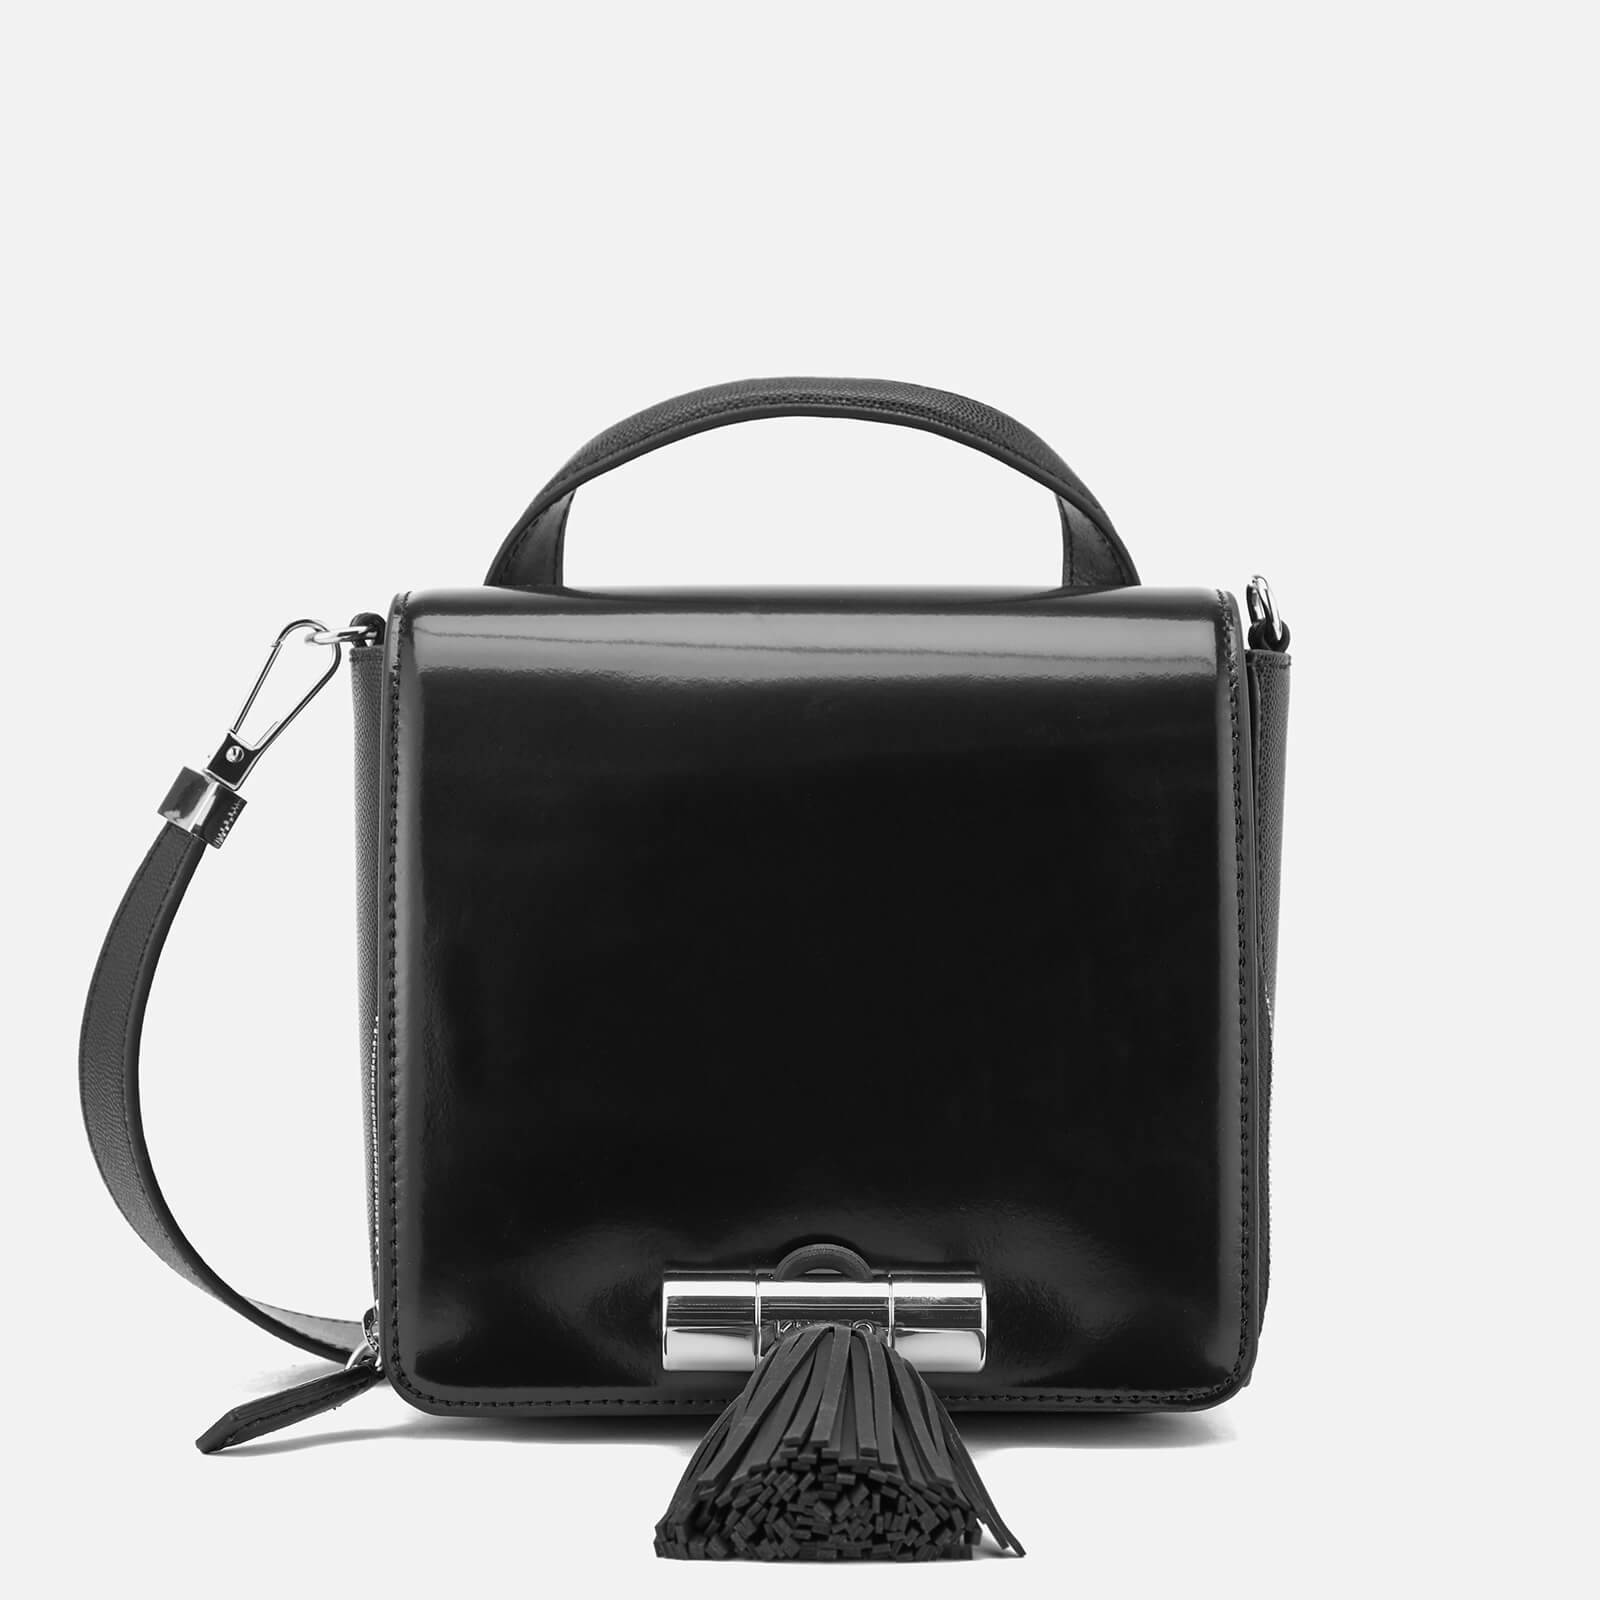 0b5f440fc3 KENZO Women's Sailor Small Top Handle Cross Body Bag - Black - Free UK  Delivery over £50